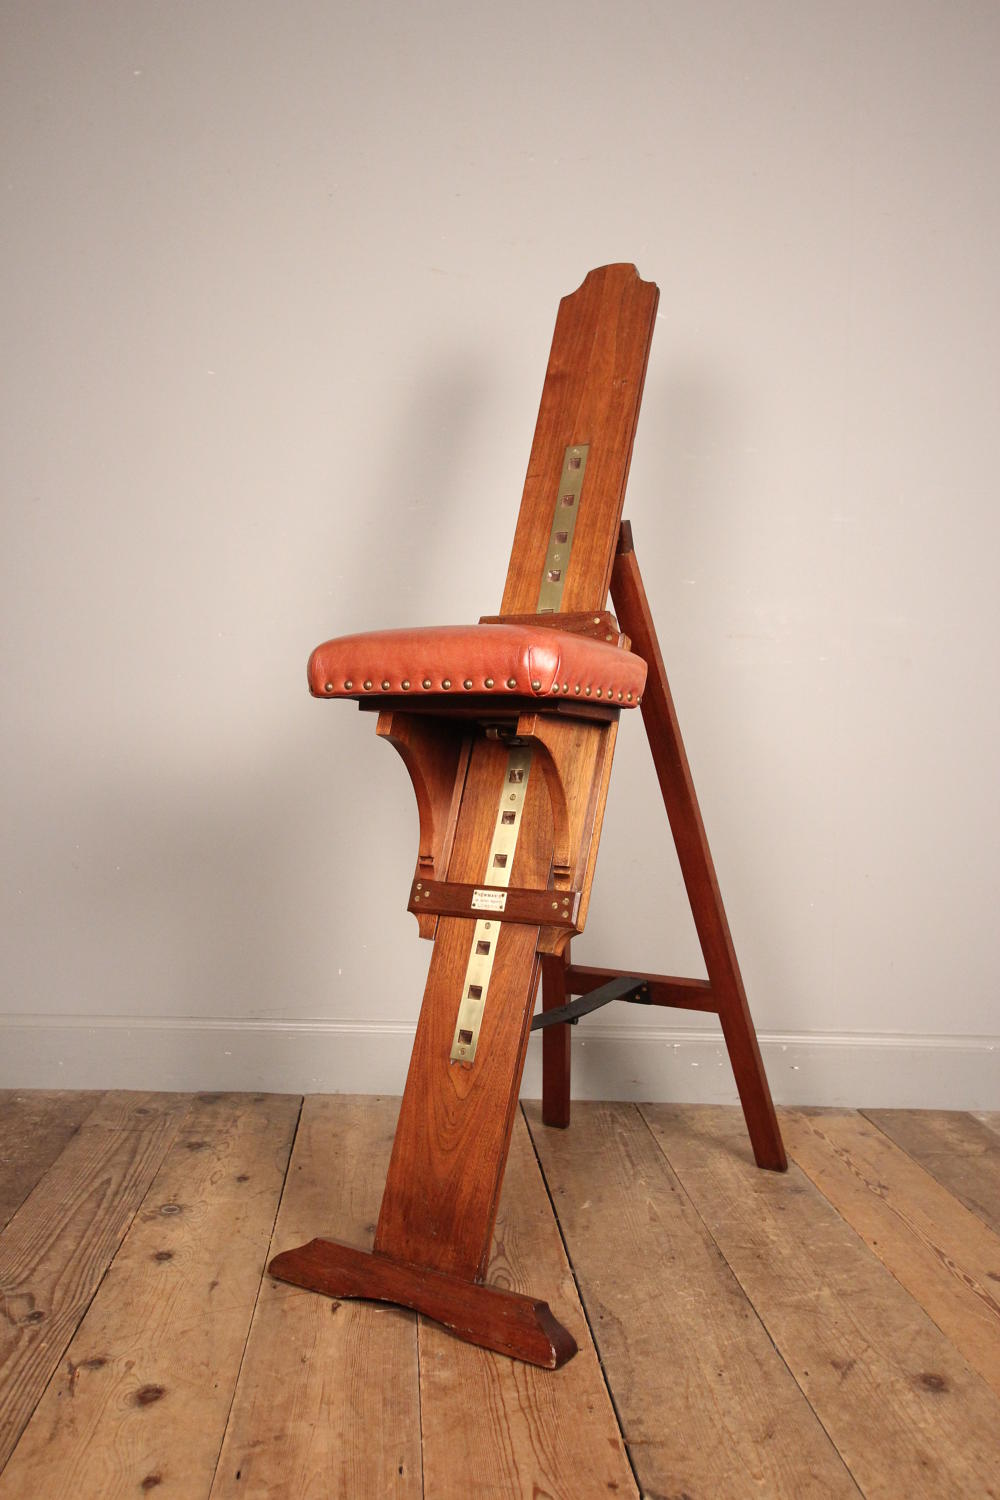 Edwardian Portable Artists Seat by Newman of London.